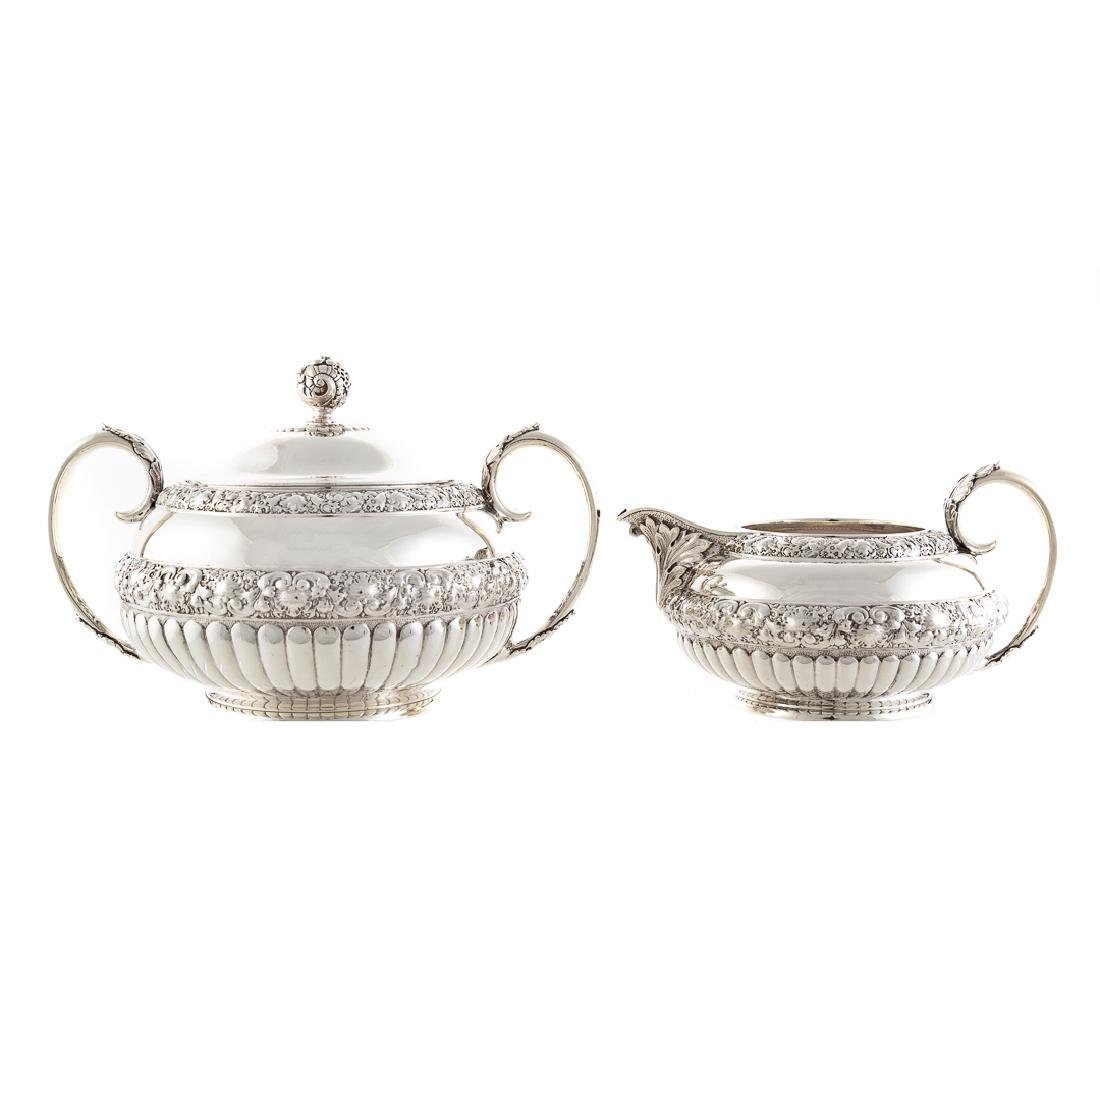 Very fine Tiffany sterling coffee & tea service - 8